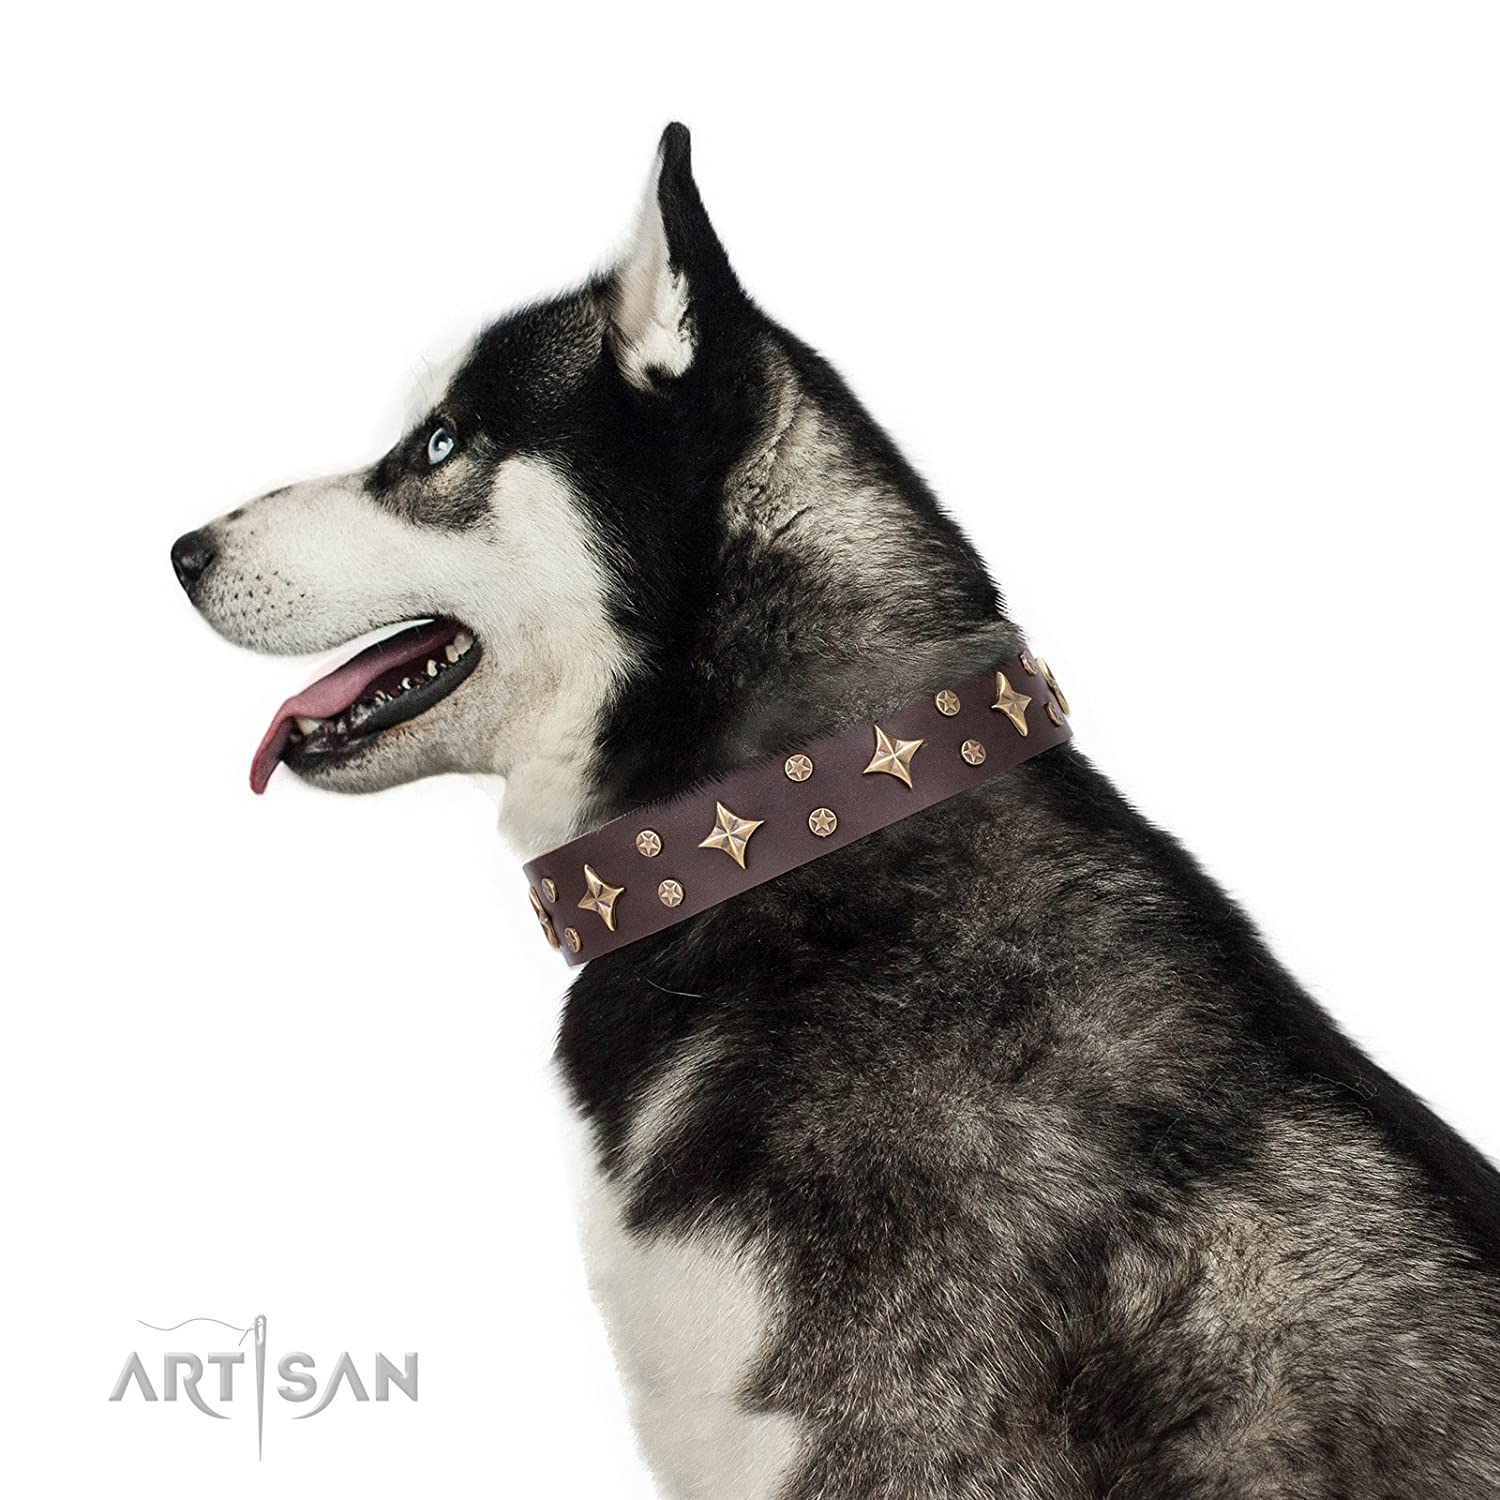 Fits for 23 inch (58cm) dog's neck size FDT Artisan 23 inch Brown Leather Dog Collar with Brass Plated Decorations  High Fashion  1 1 2 inch (40 mm) wide